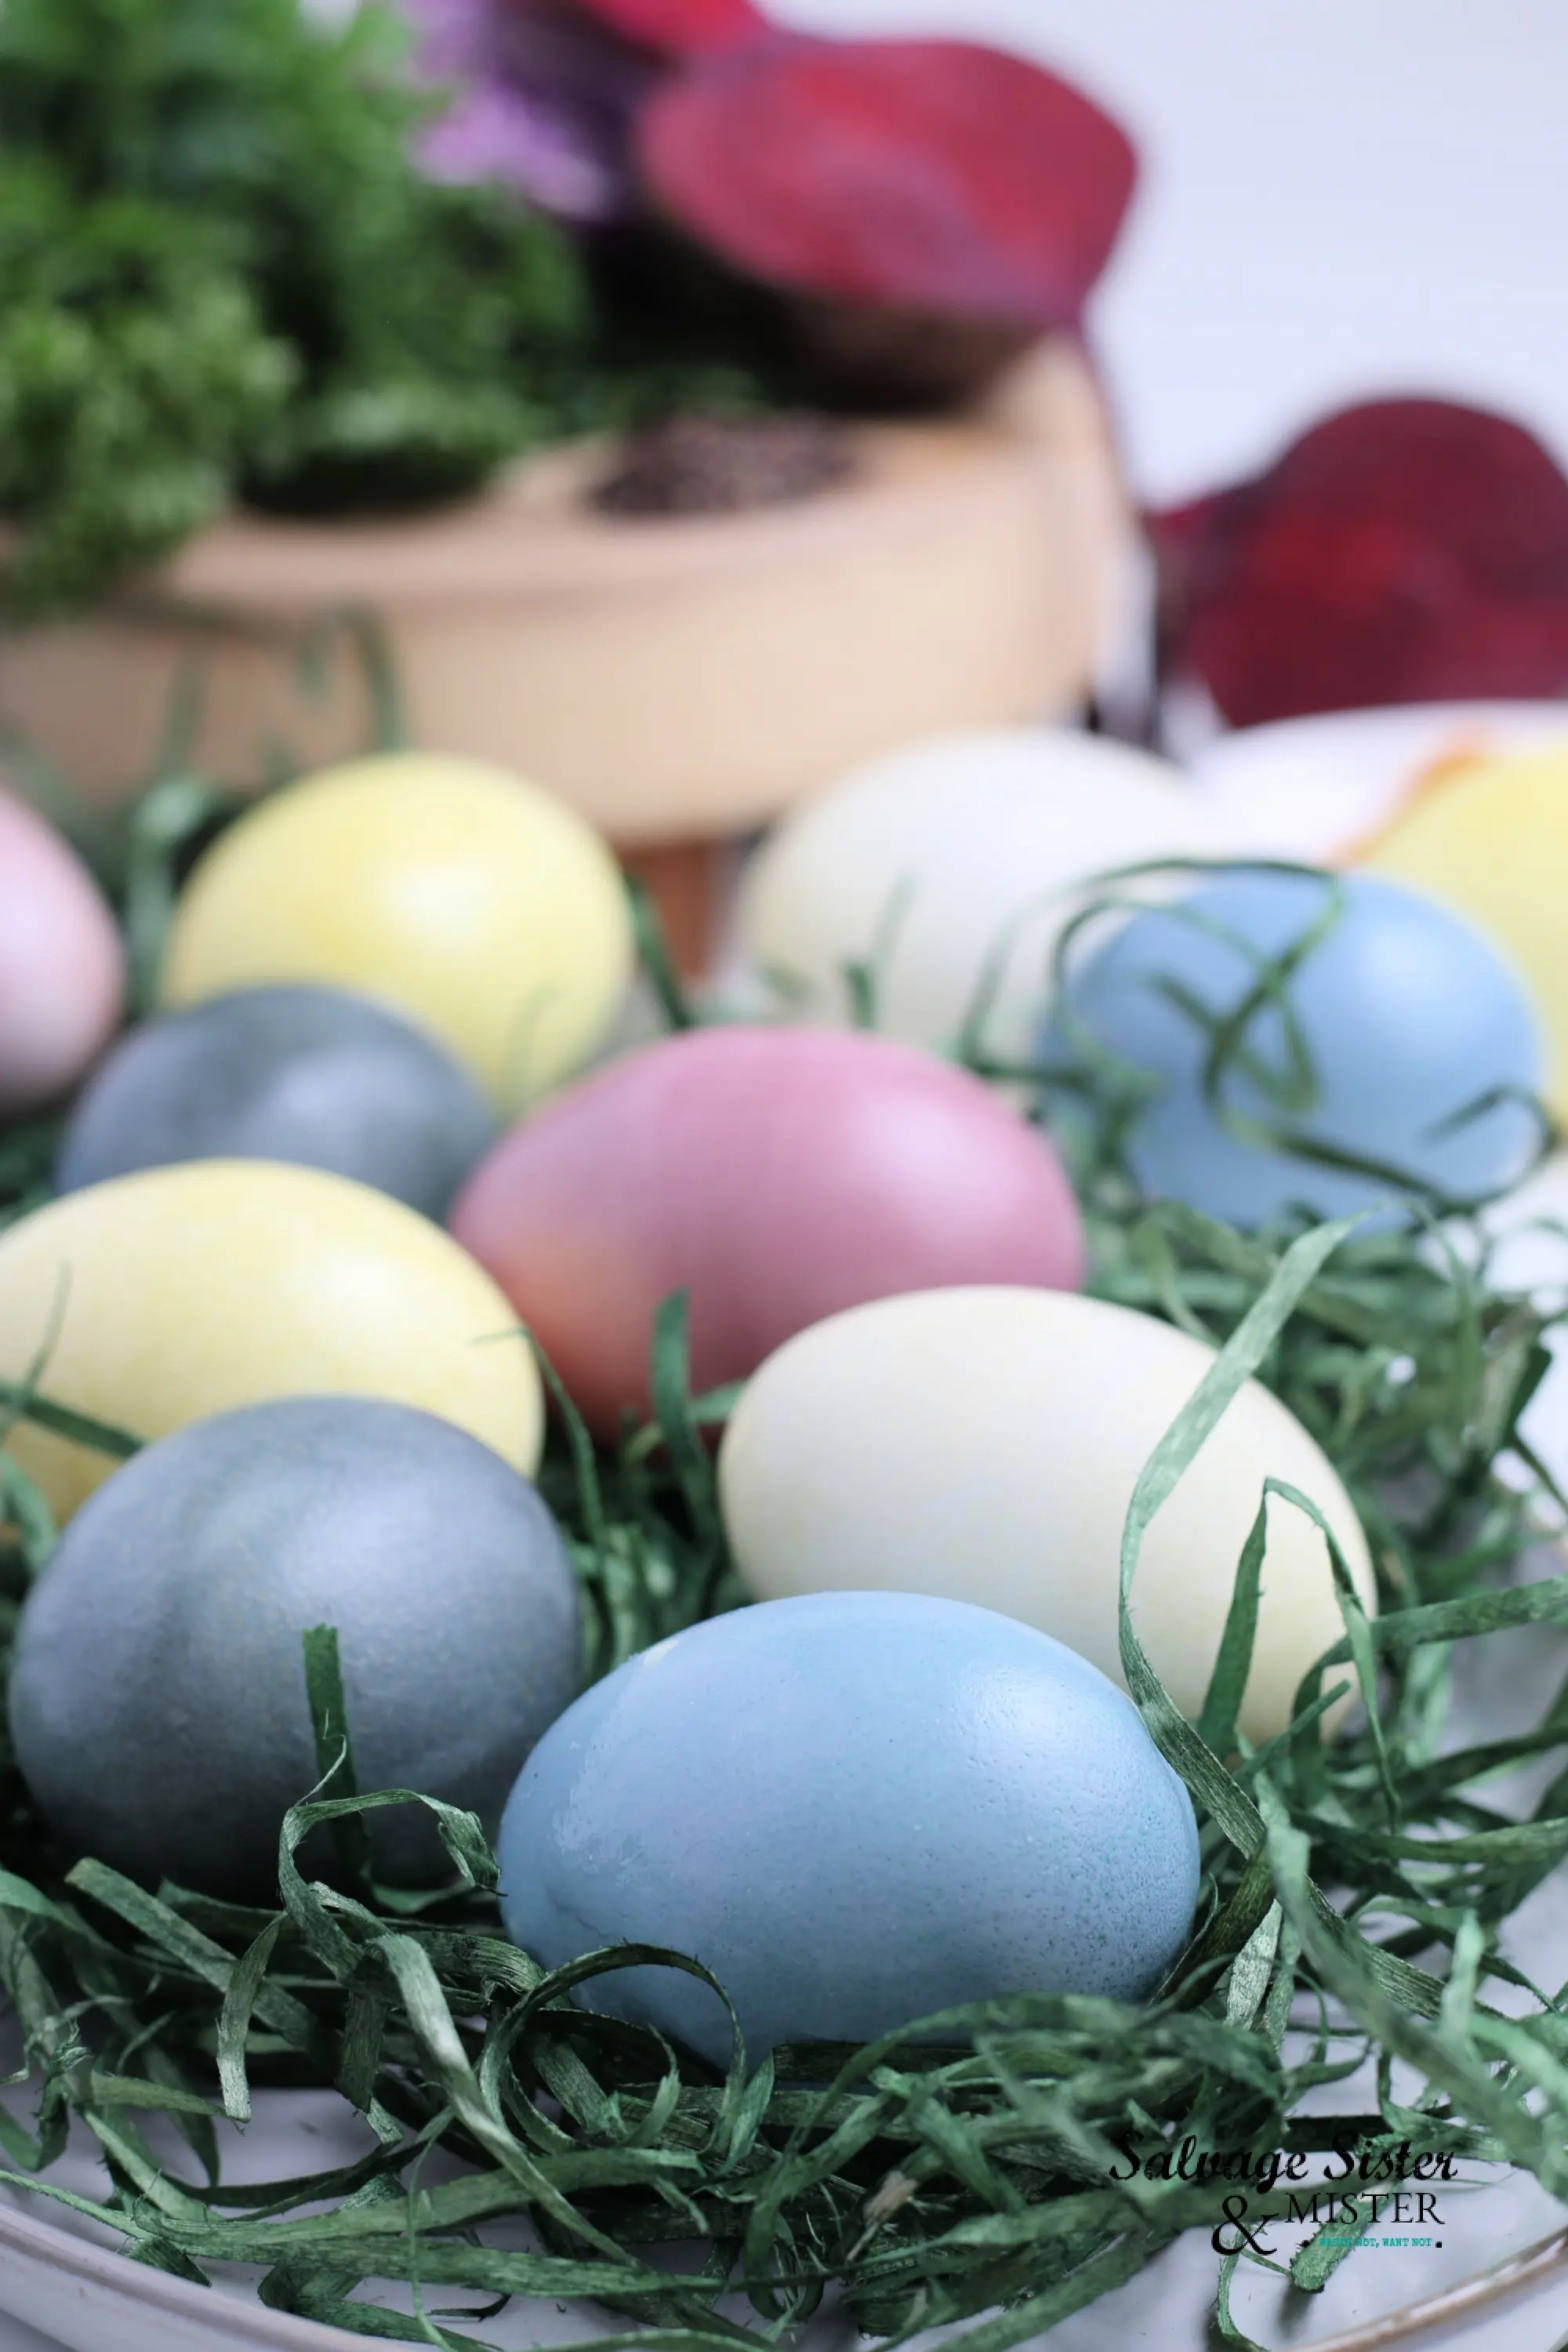 You can use natural ingredients to create Natural Dyed Eggs.